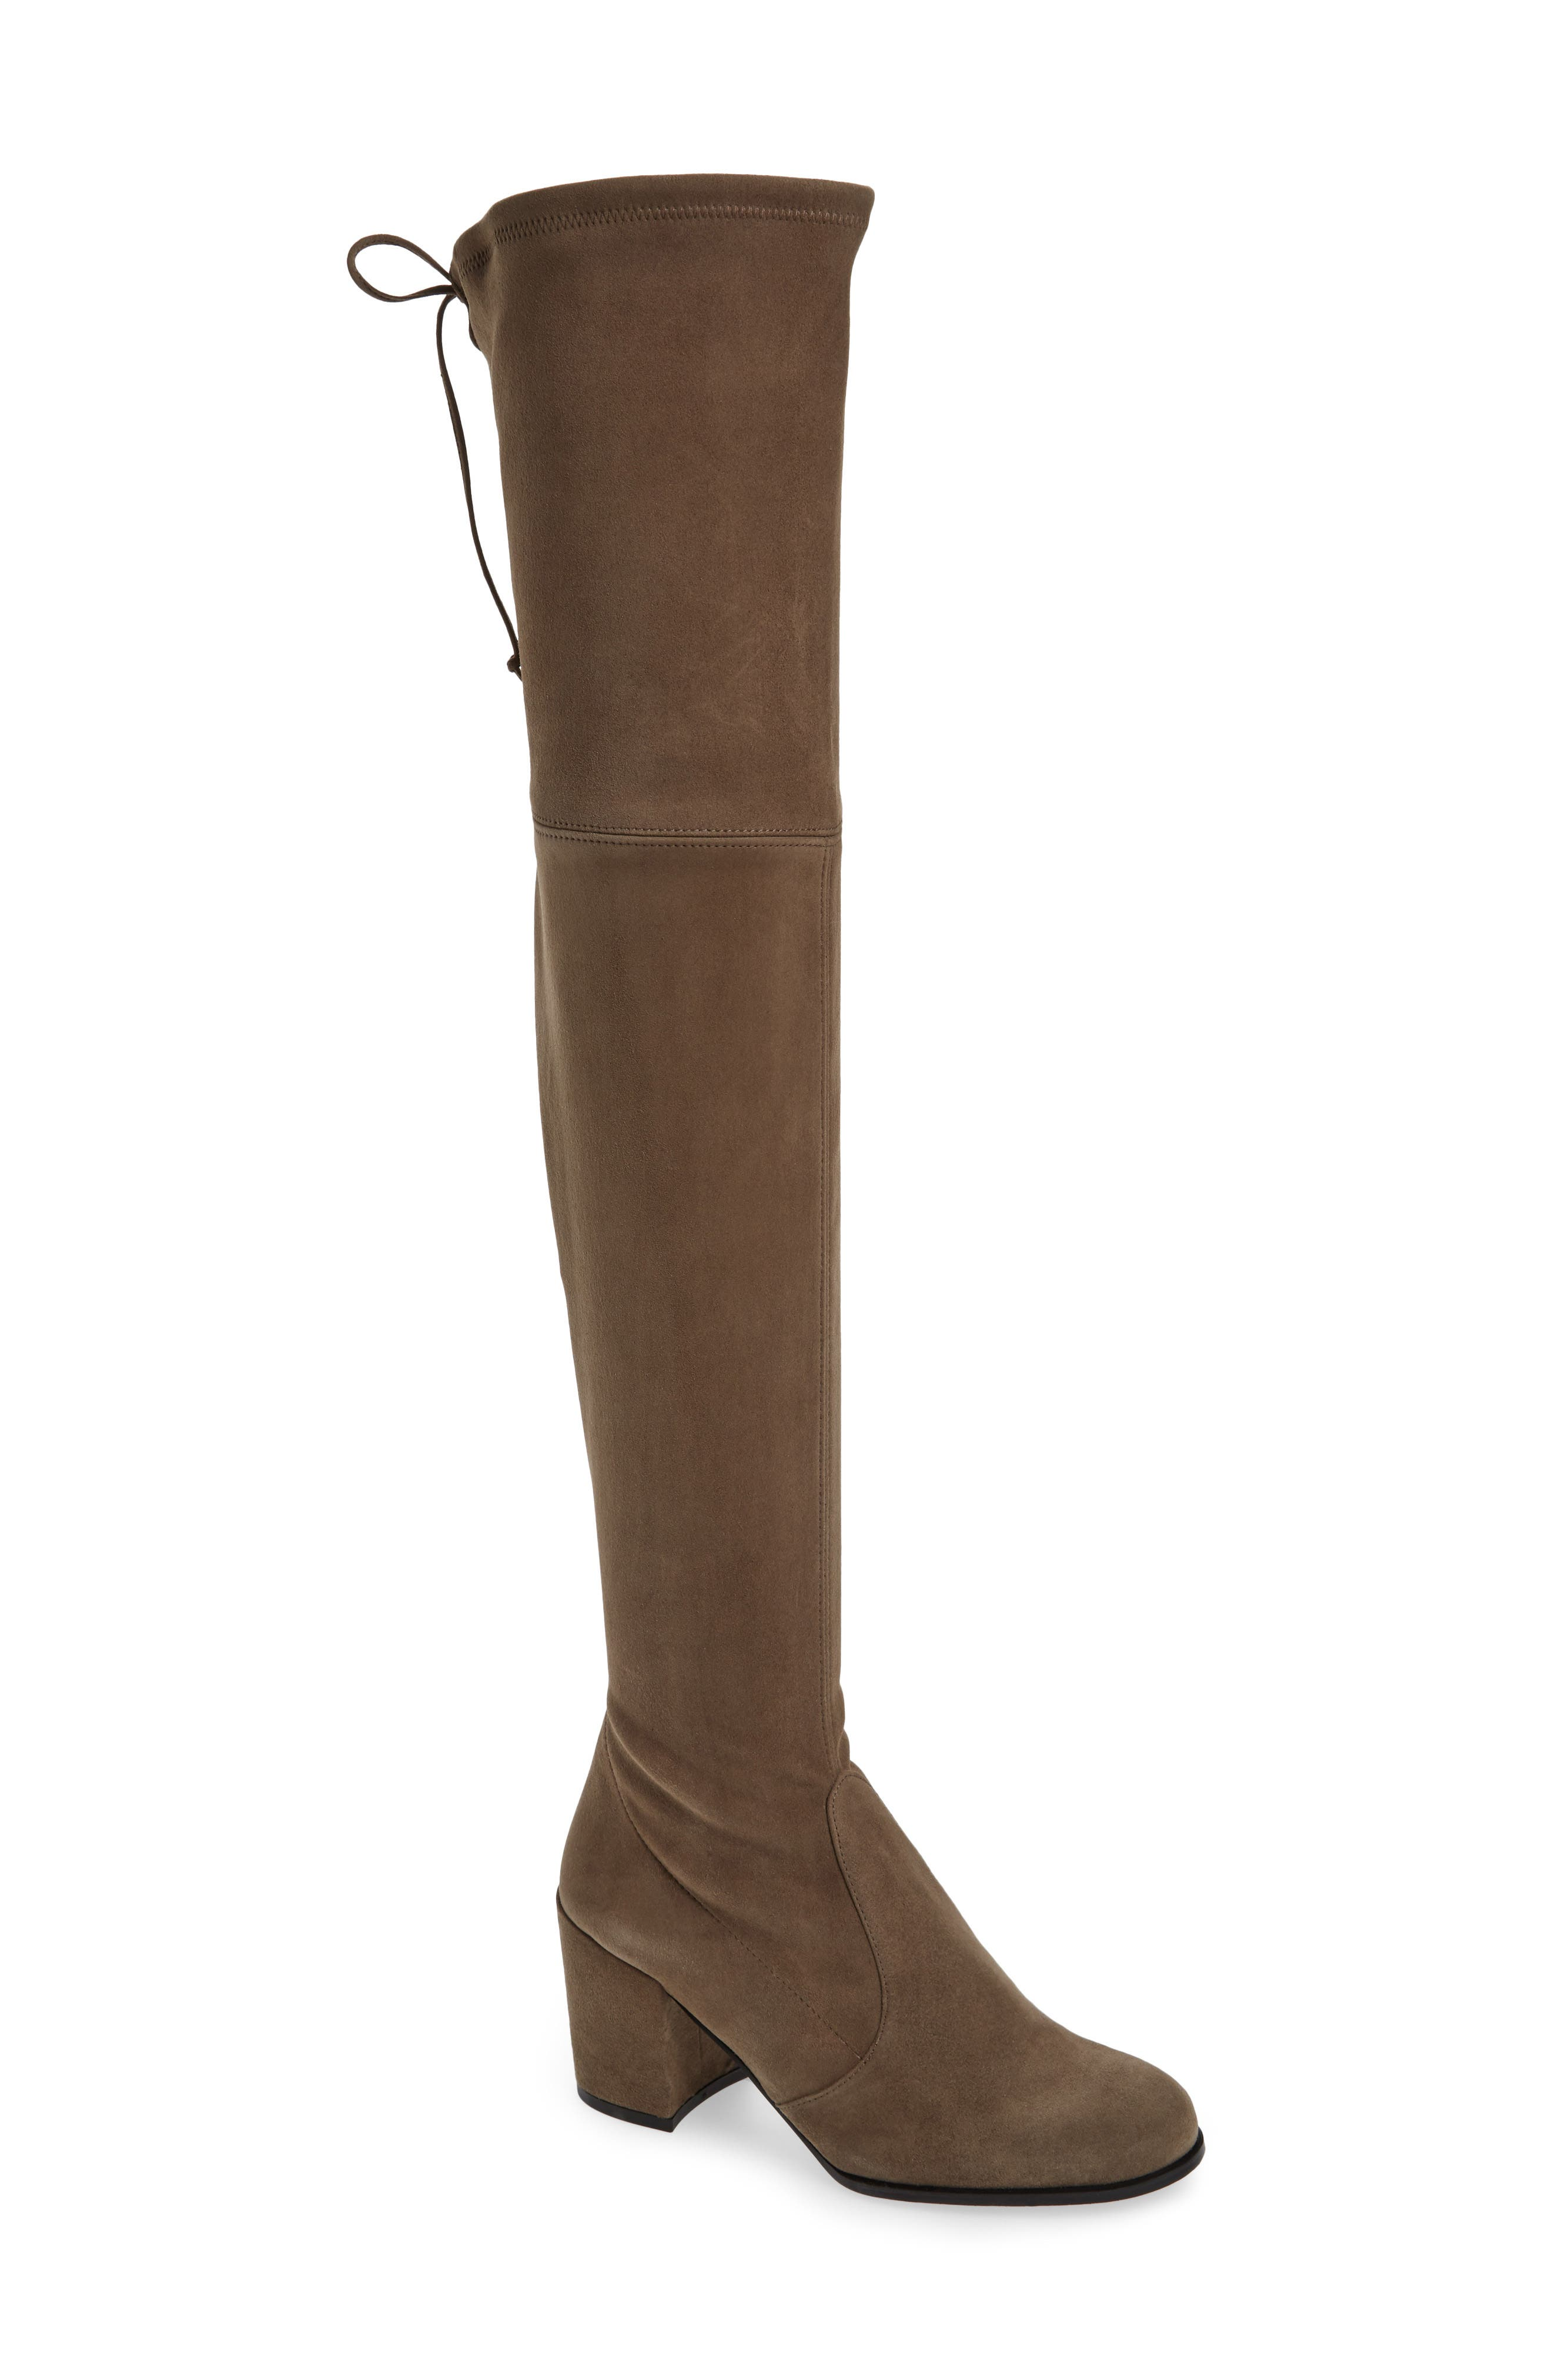 Tieland Over the Knee Boot,                             Main thumbnail 1, color,                             Praline Suede